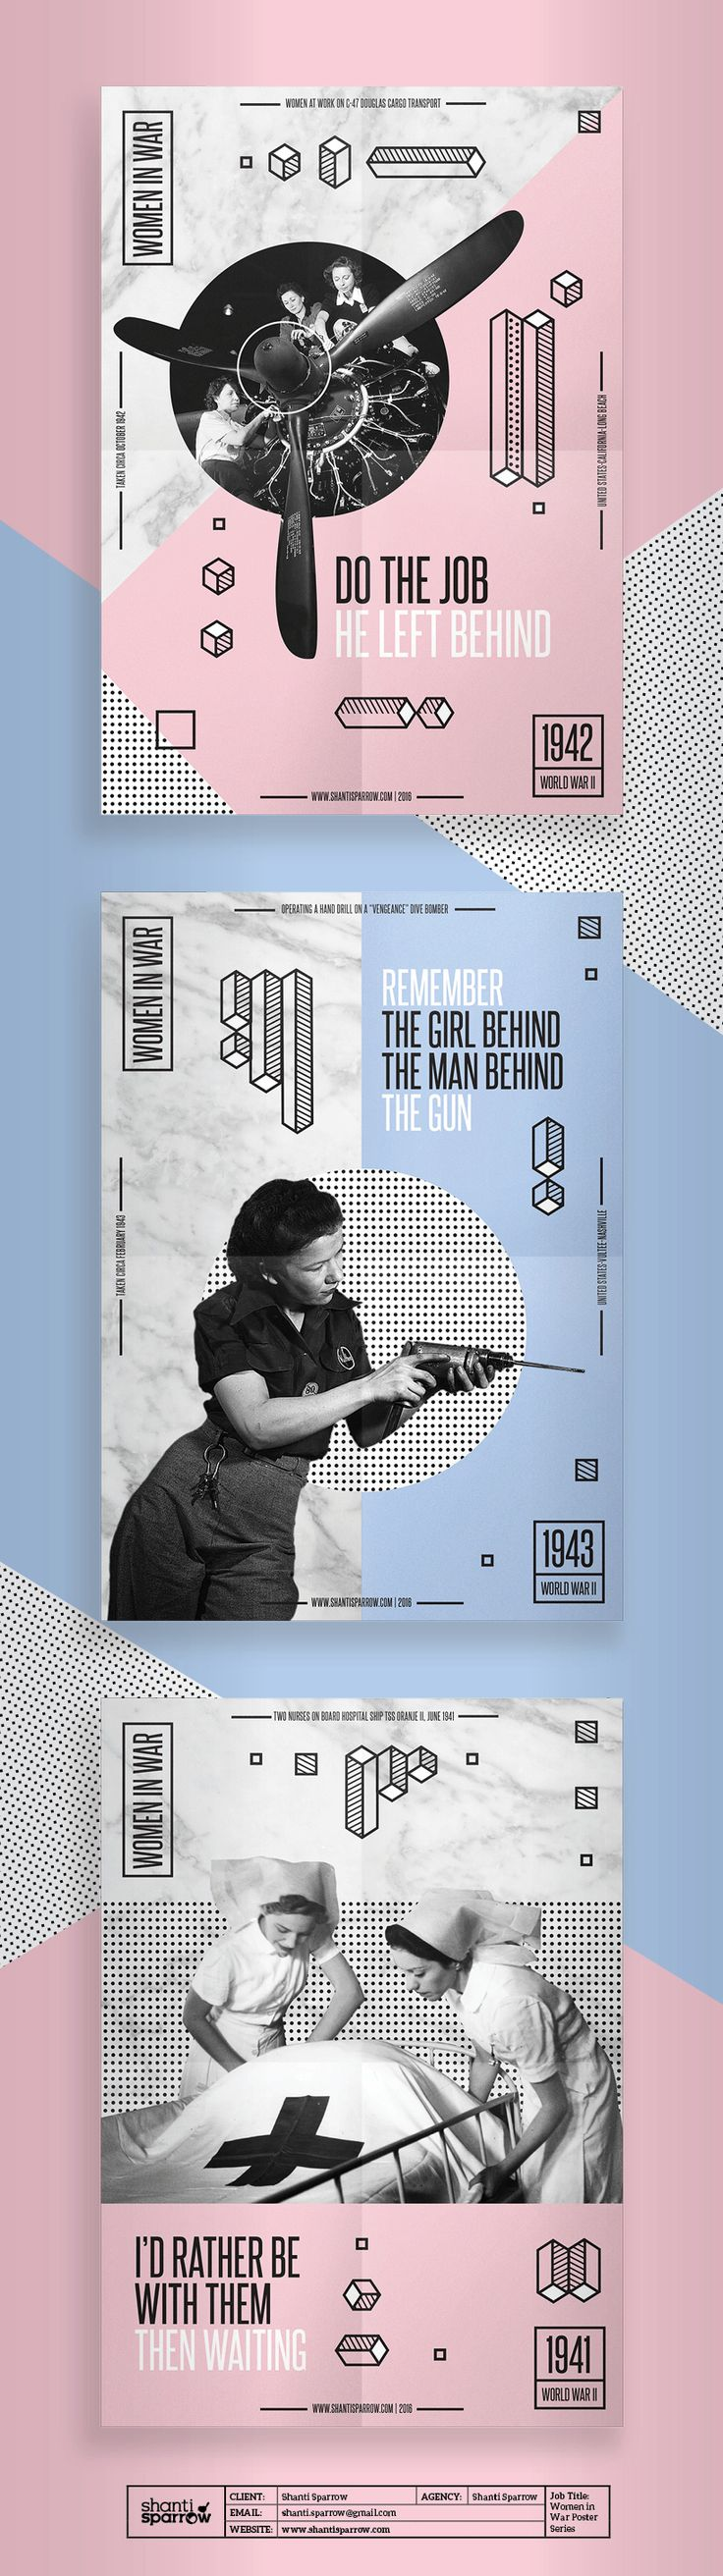 Poster design ks2 - Memphis Design Style Shanti Sparrow Has Just Been Named Number 27 Of Women Doing Amazing Things In Graphic Design Shanti S Engaging Posters And